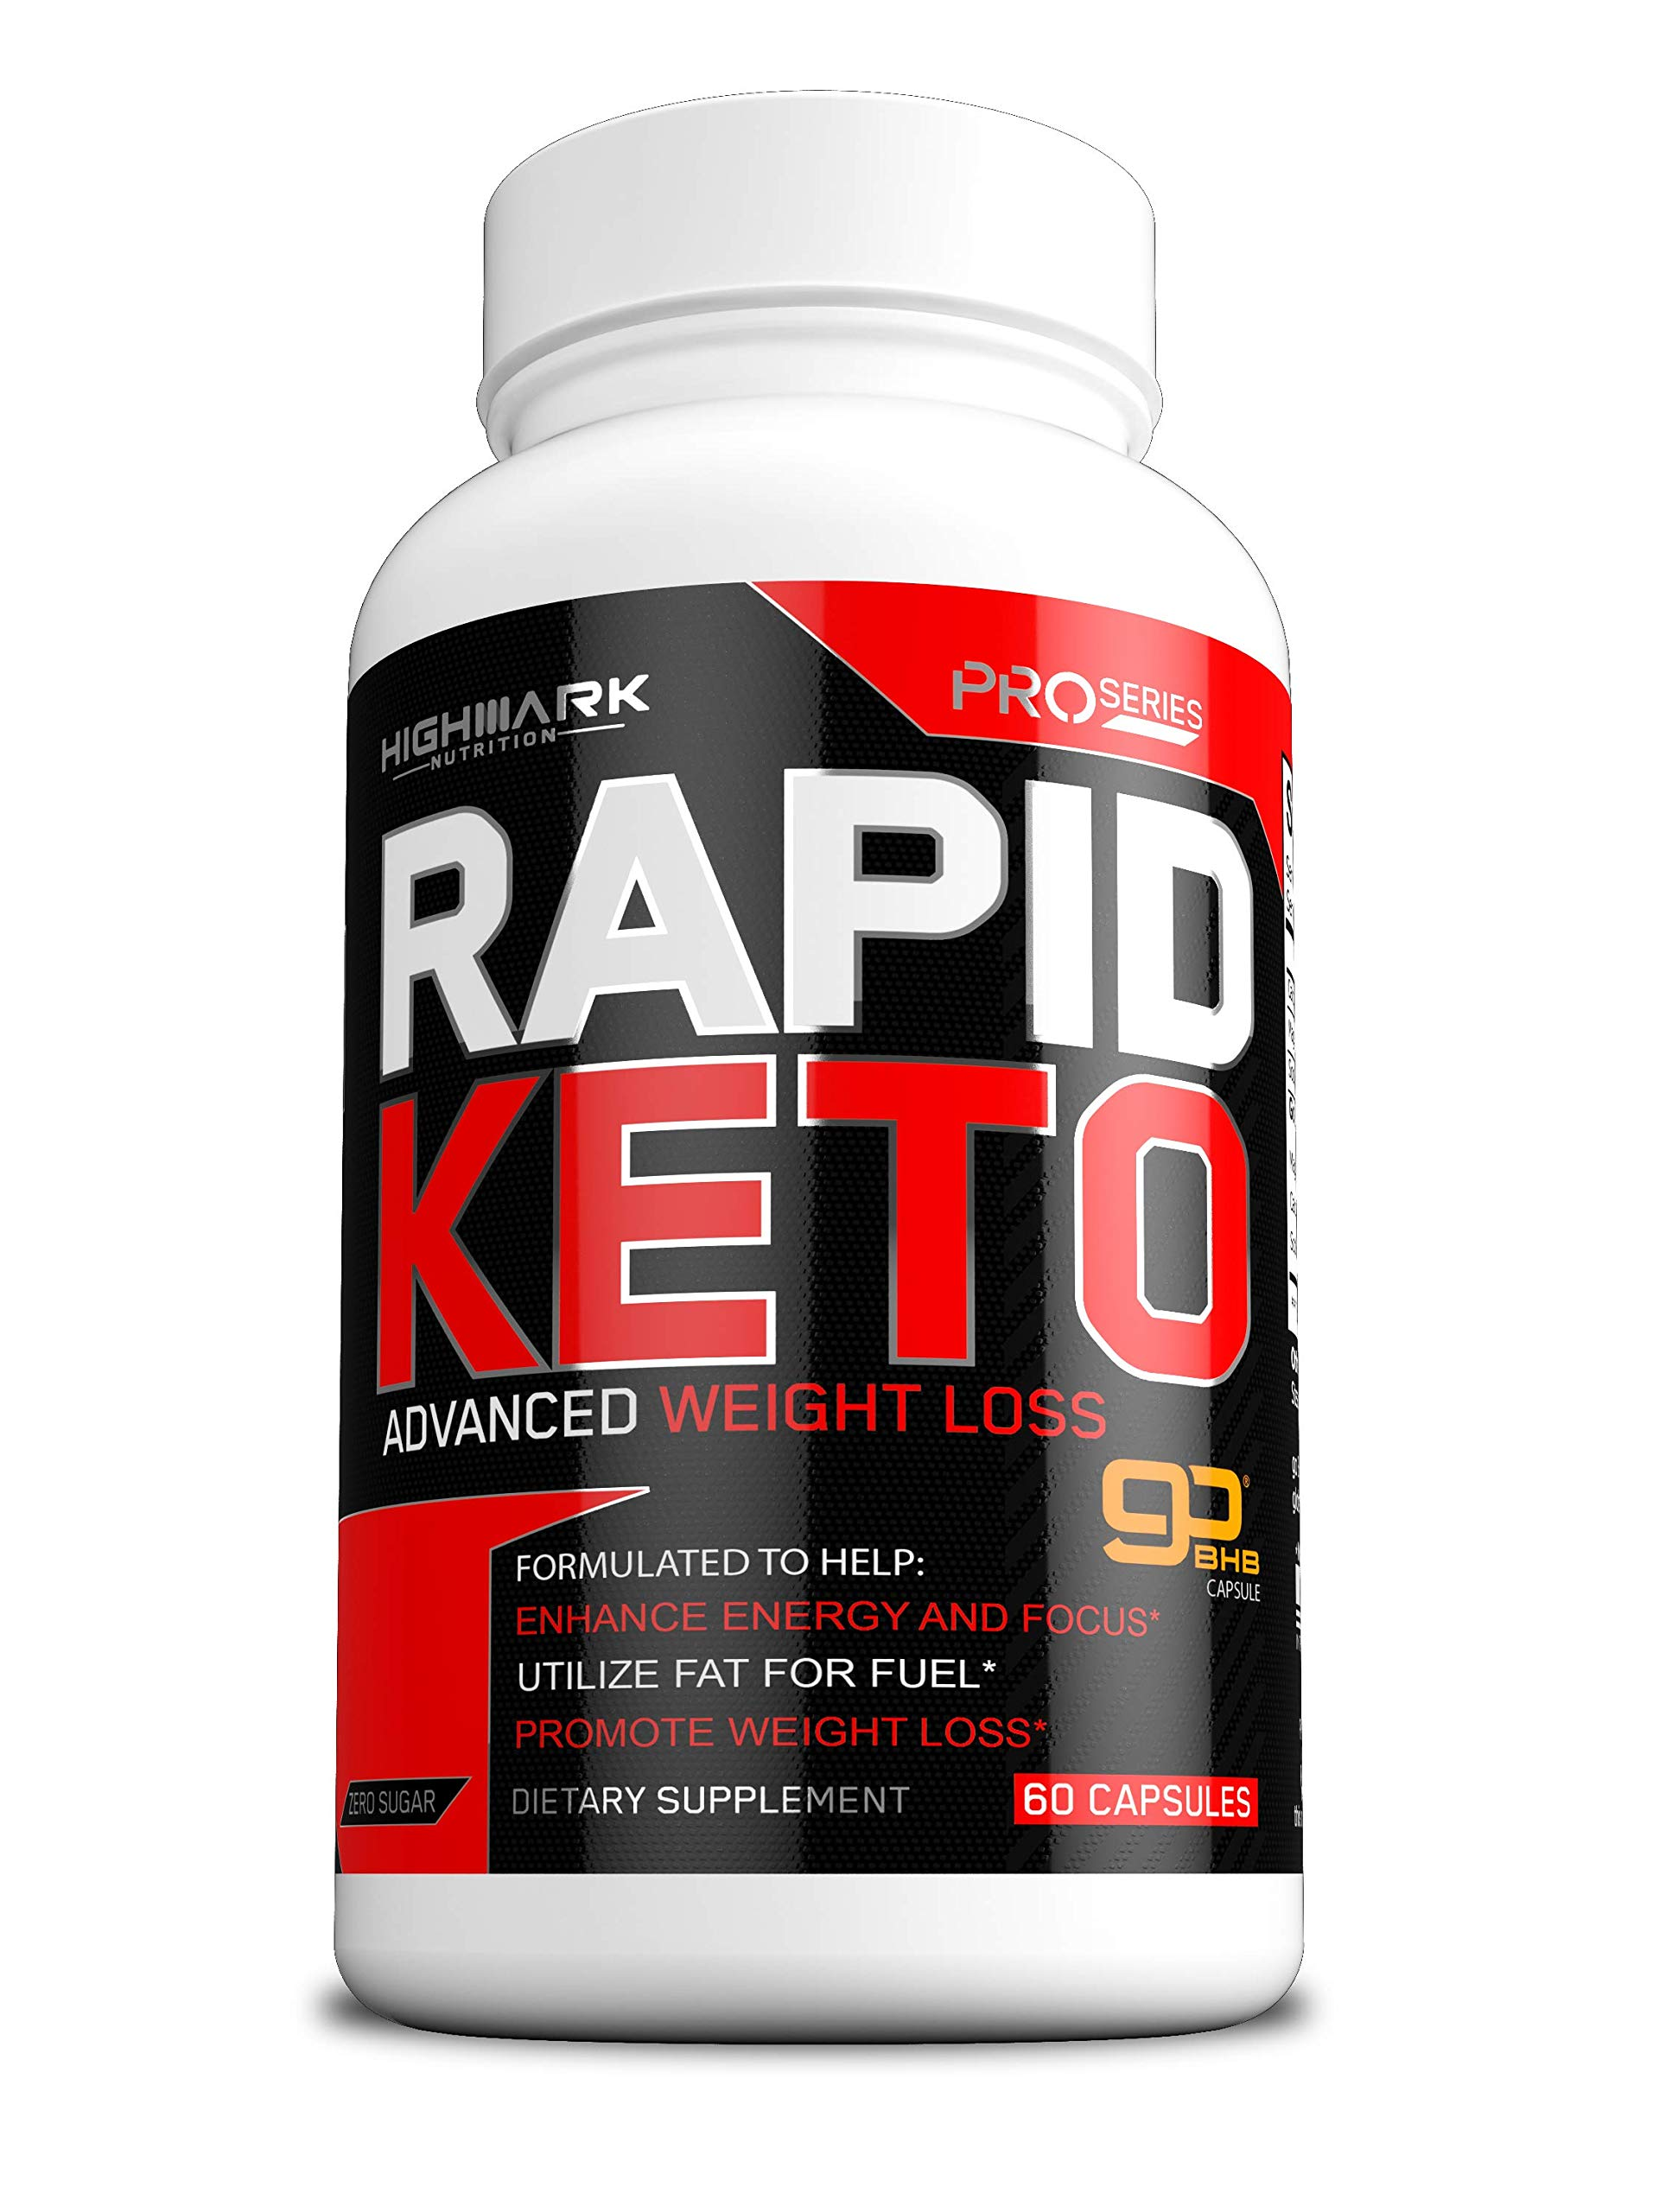 Rapid Keto Diet Pills | Advanced Ketogenic Diet Weight Loss Supplement | BHB Salts Exogenous Ketones Capsules for Men & Women | Fast & Effective Ketosis Diet Fat Burner | Promote Energy & Focus | 60 by HighMark Nutrition